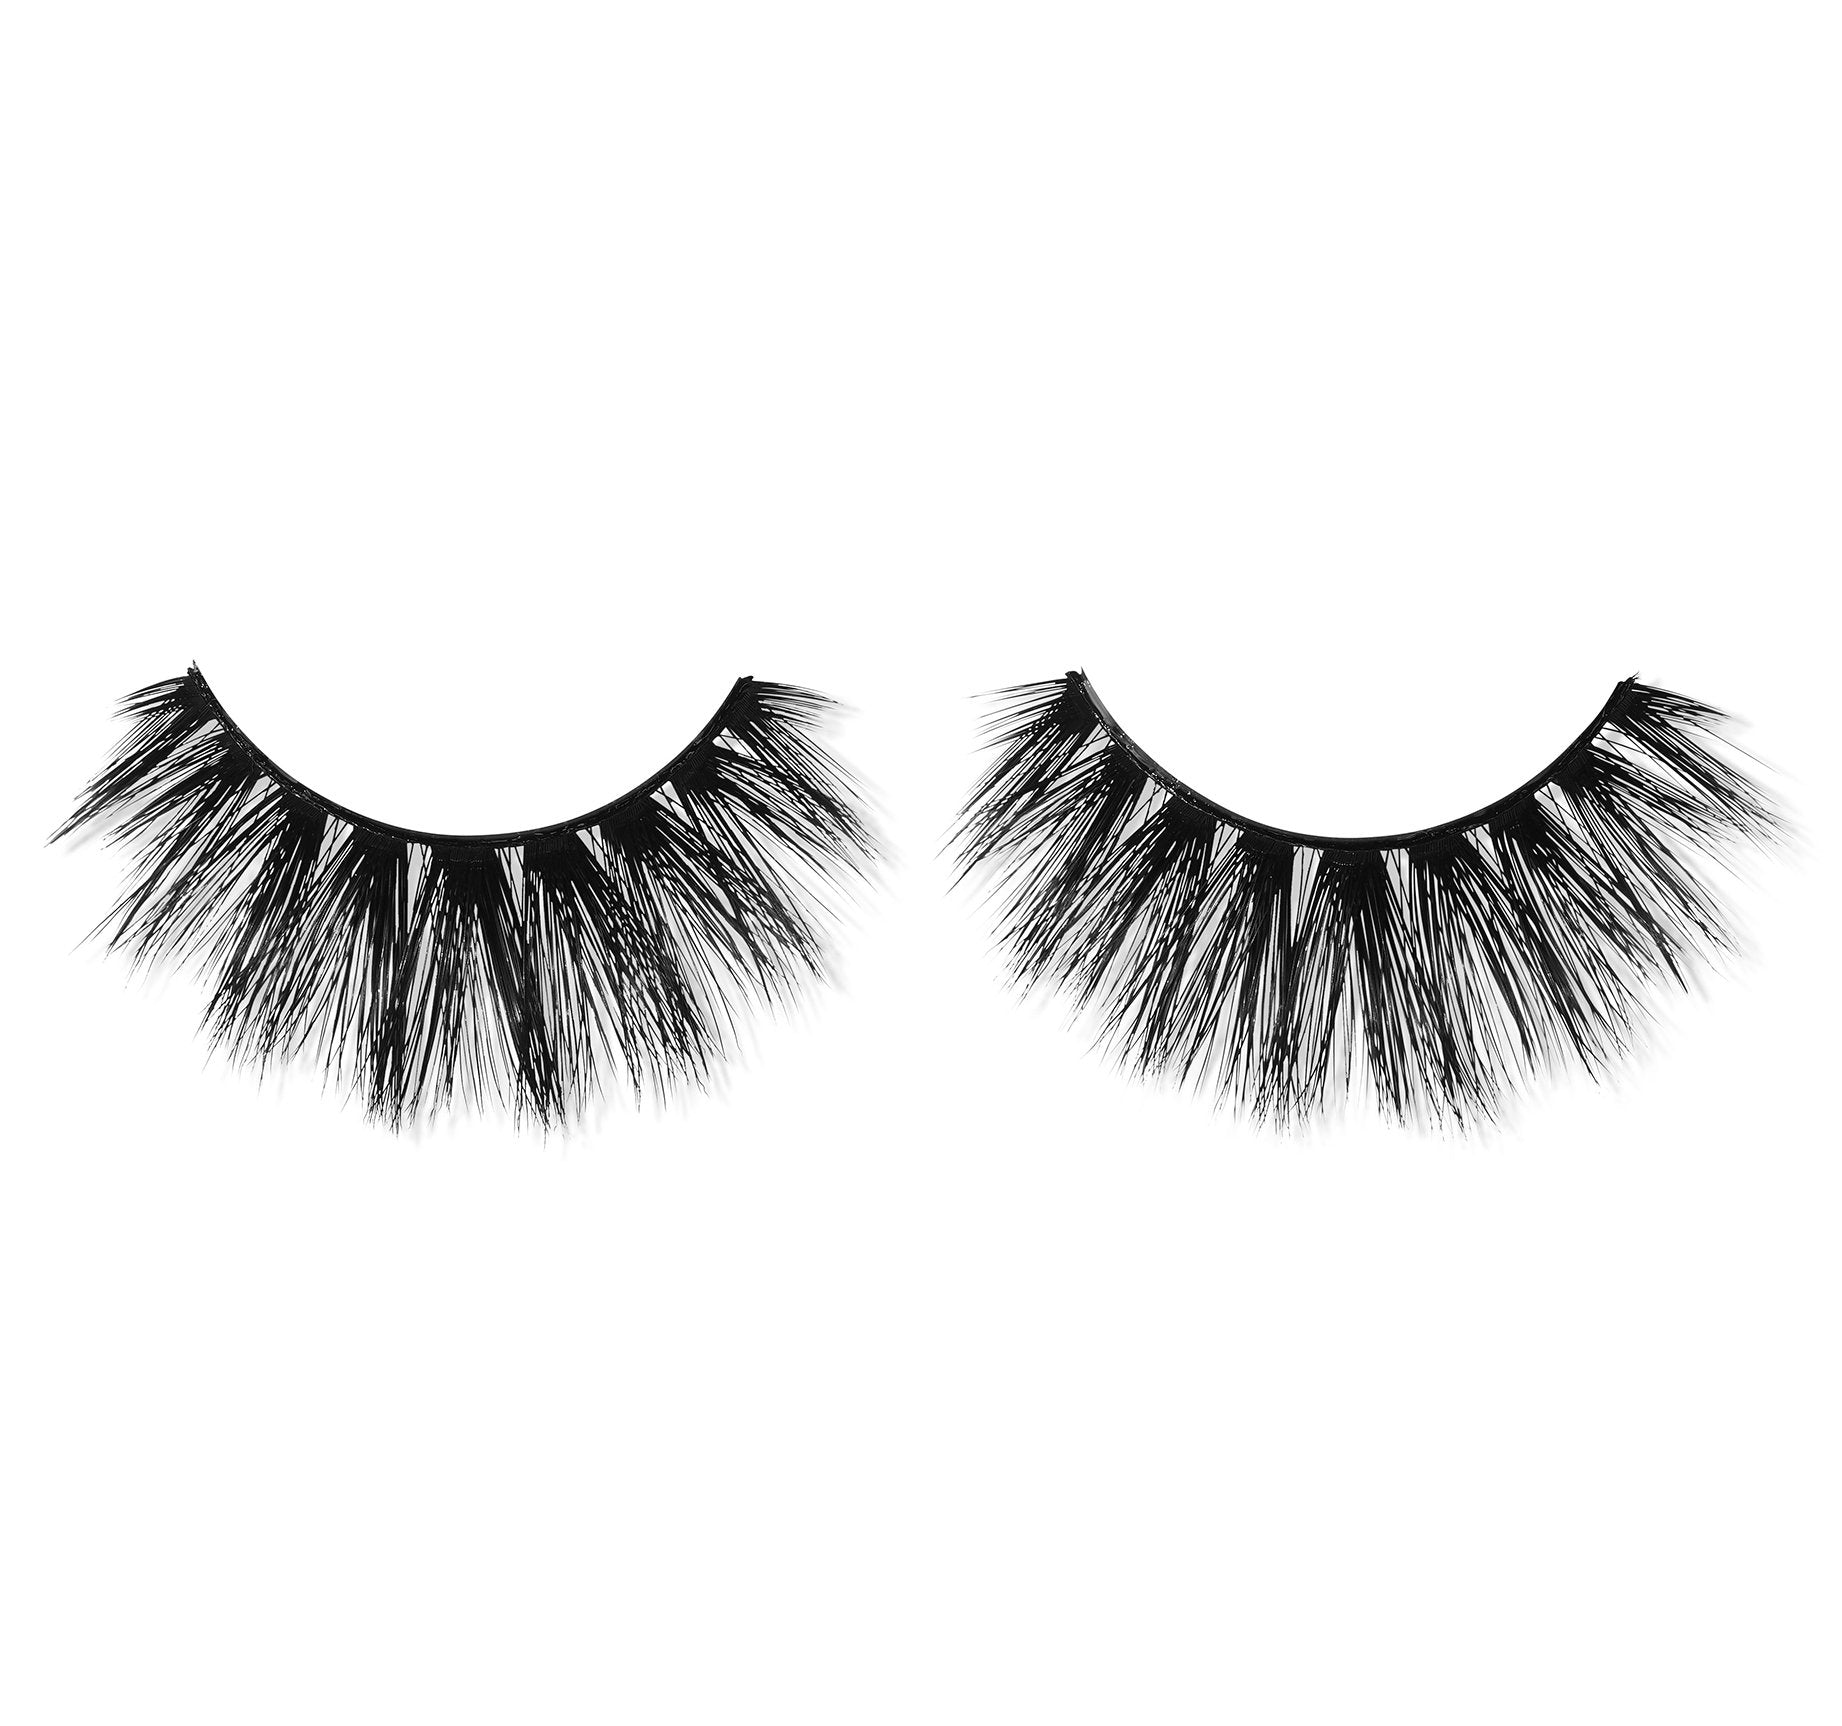 PREMIUM LASHES -  GLAMBASSADOR, view larger image